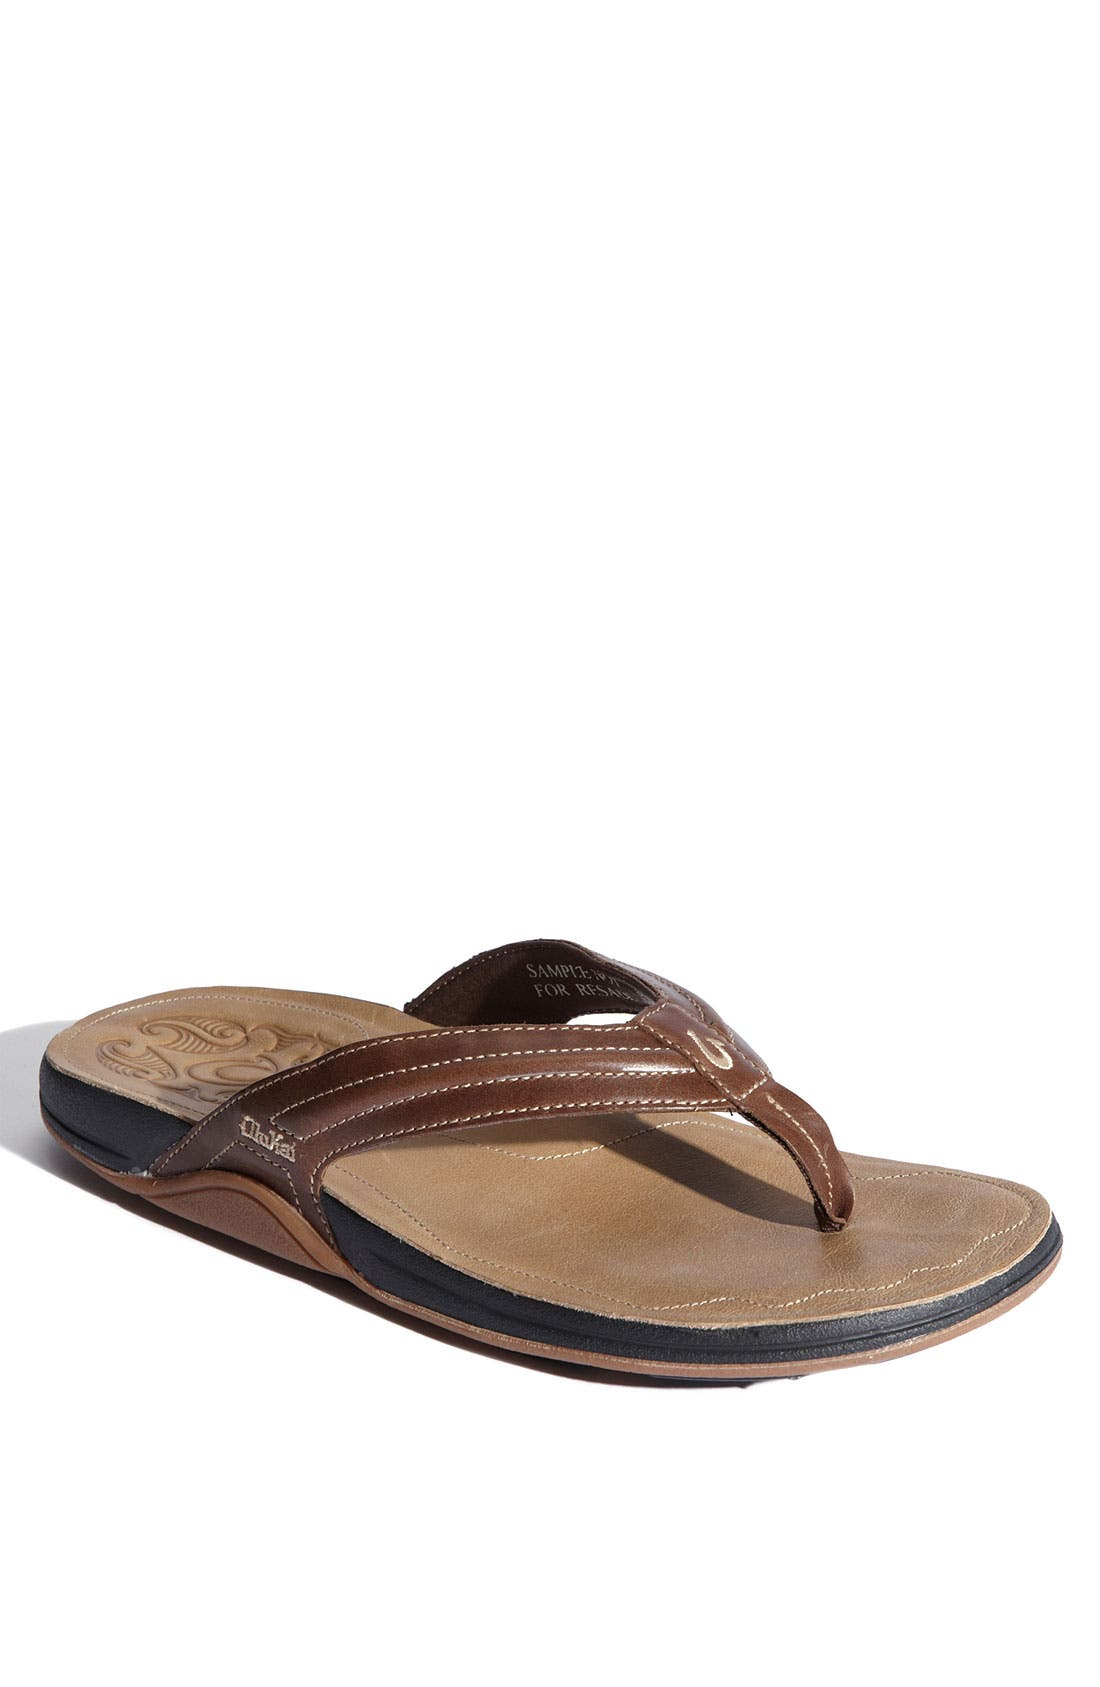 Alternate Image 1 Selected - OluKai 'Moko' Flip Flop (Online Only)